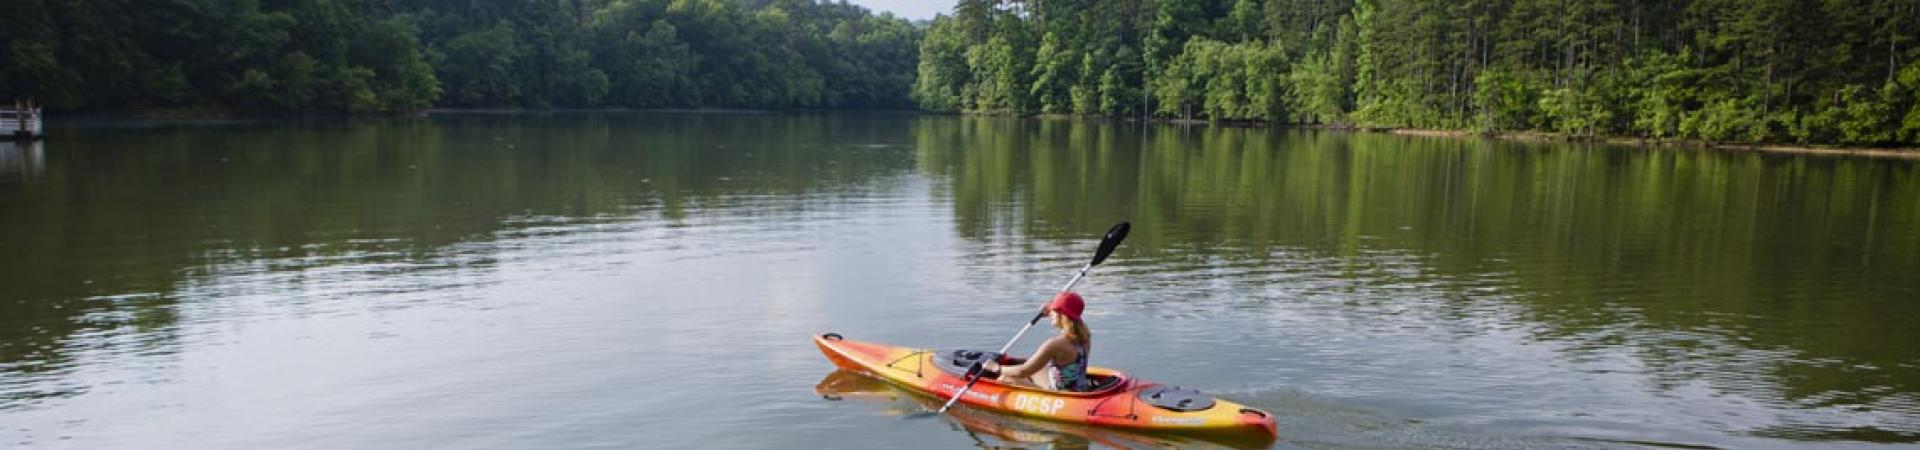 Kayaking at Don Carter State Park